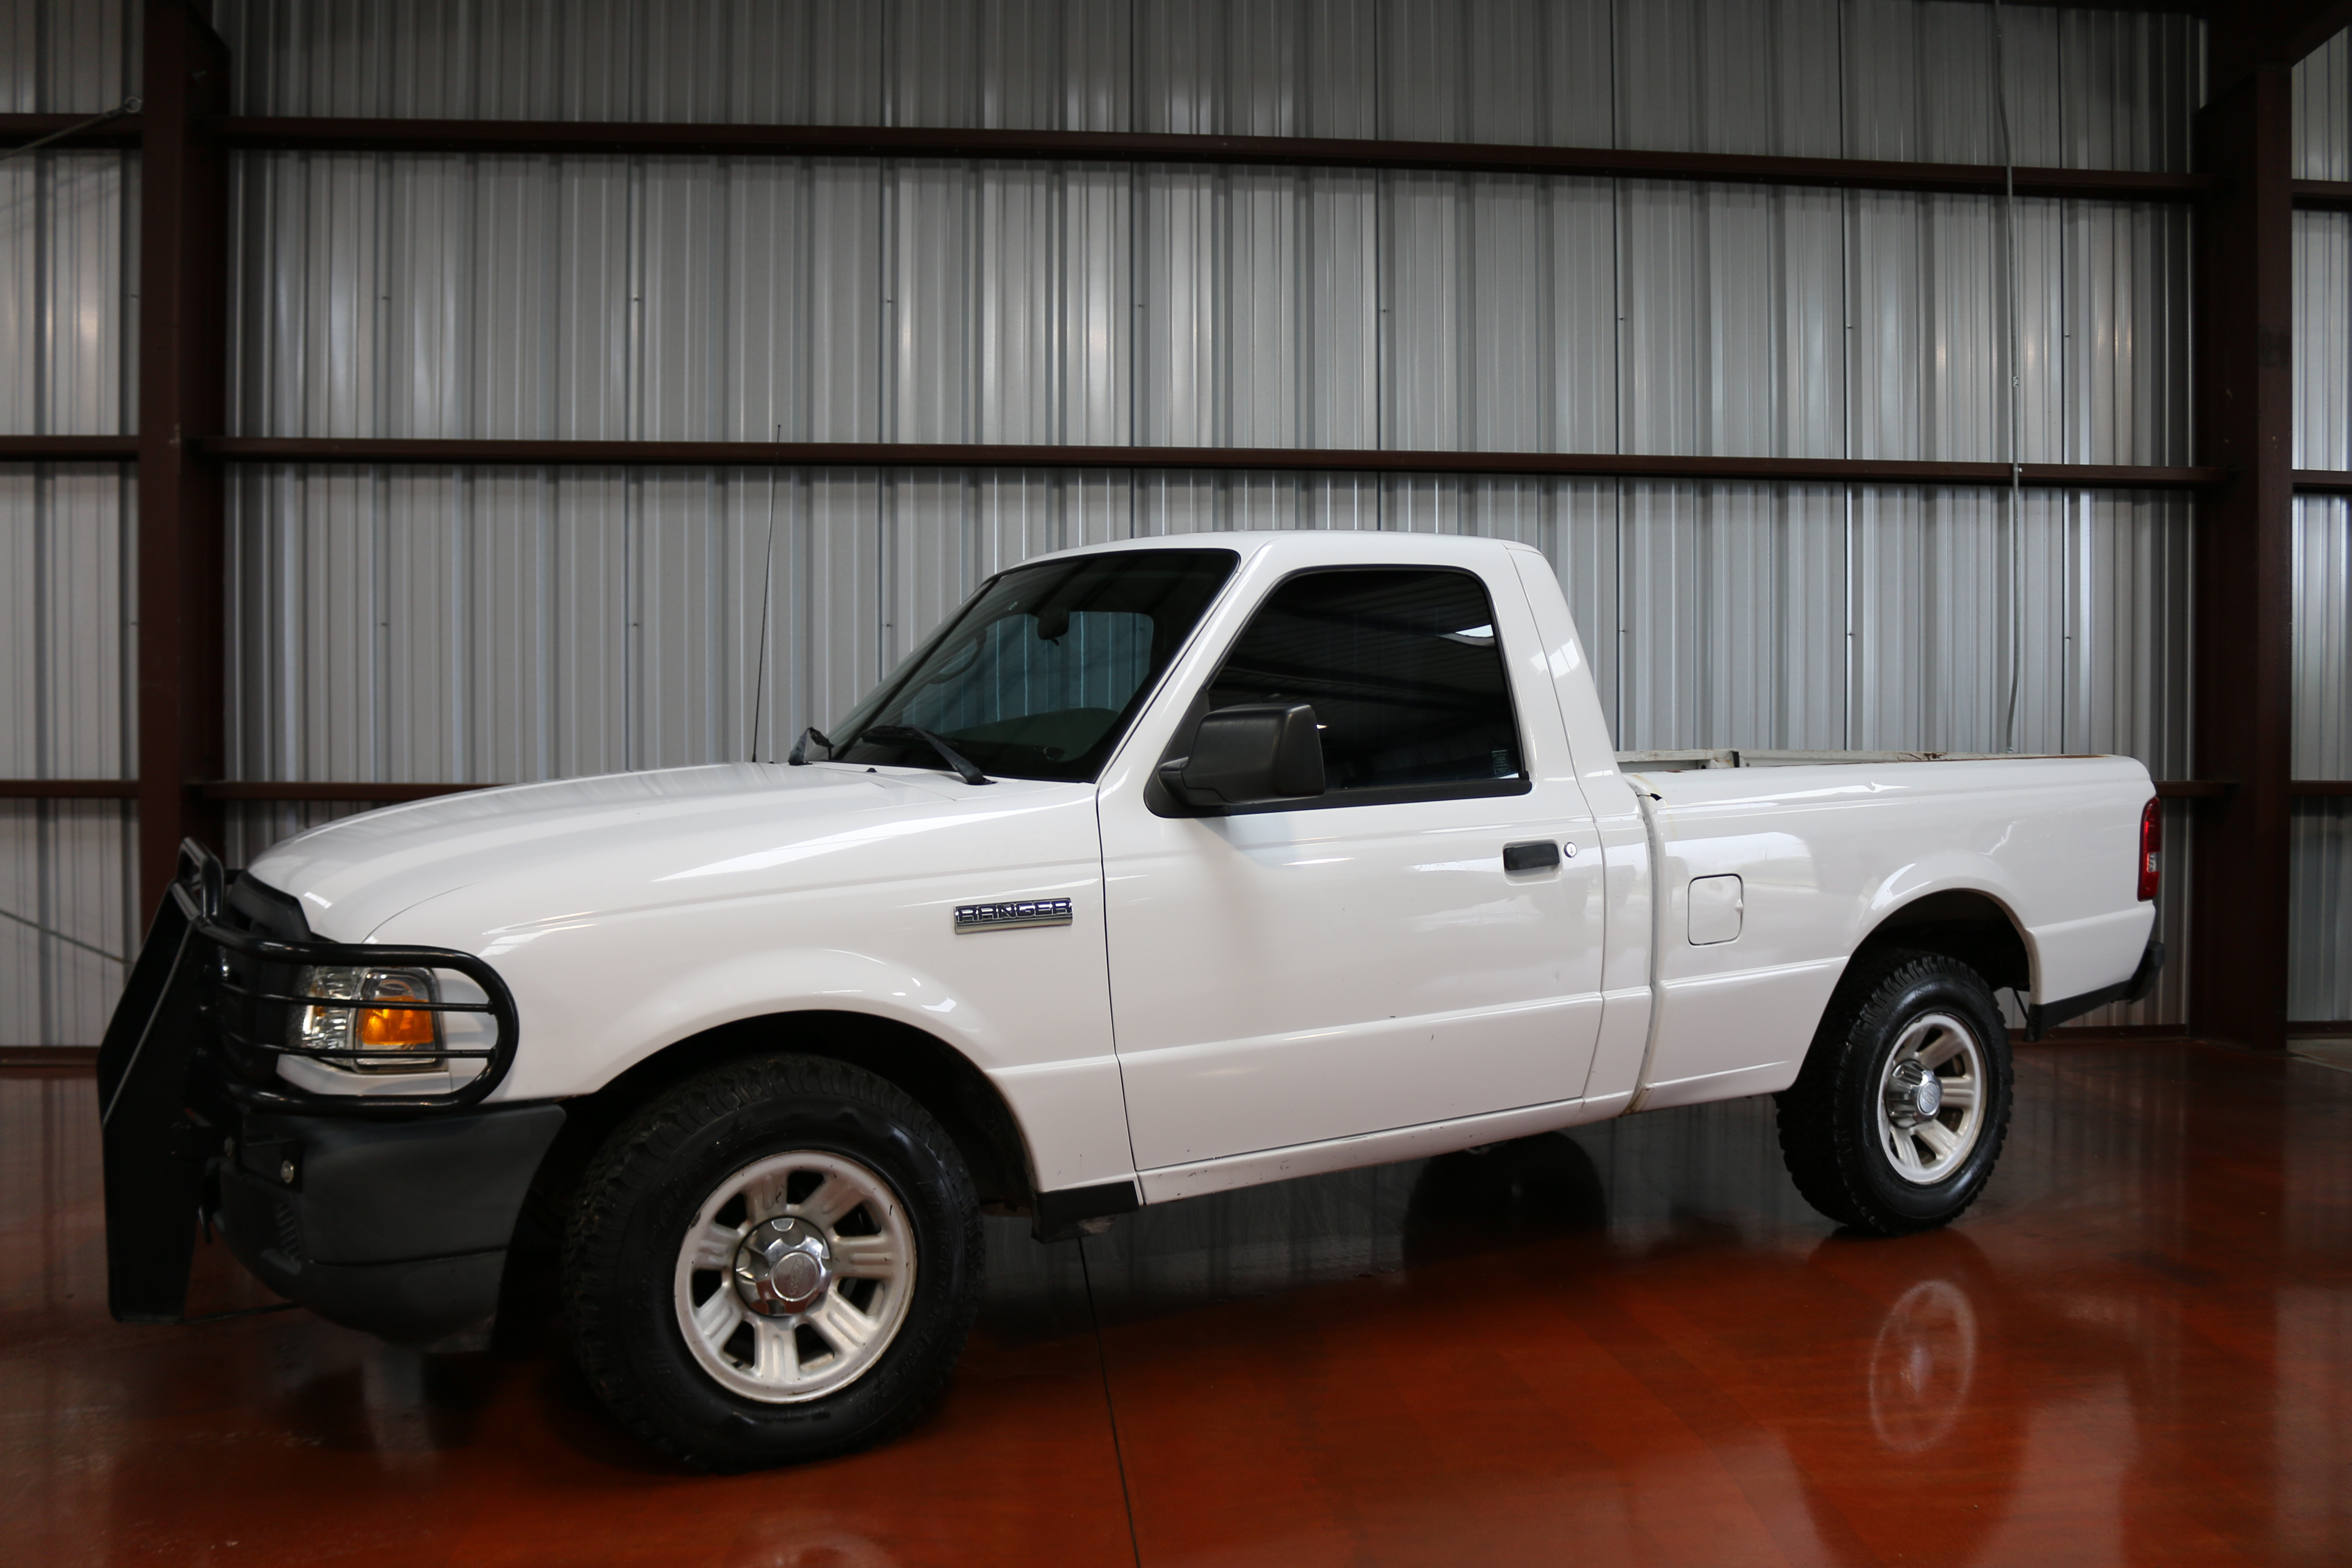 Used 2007 Ford Ranger Xl Truck 93899 76537 Automatic Carfax